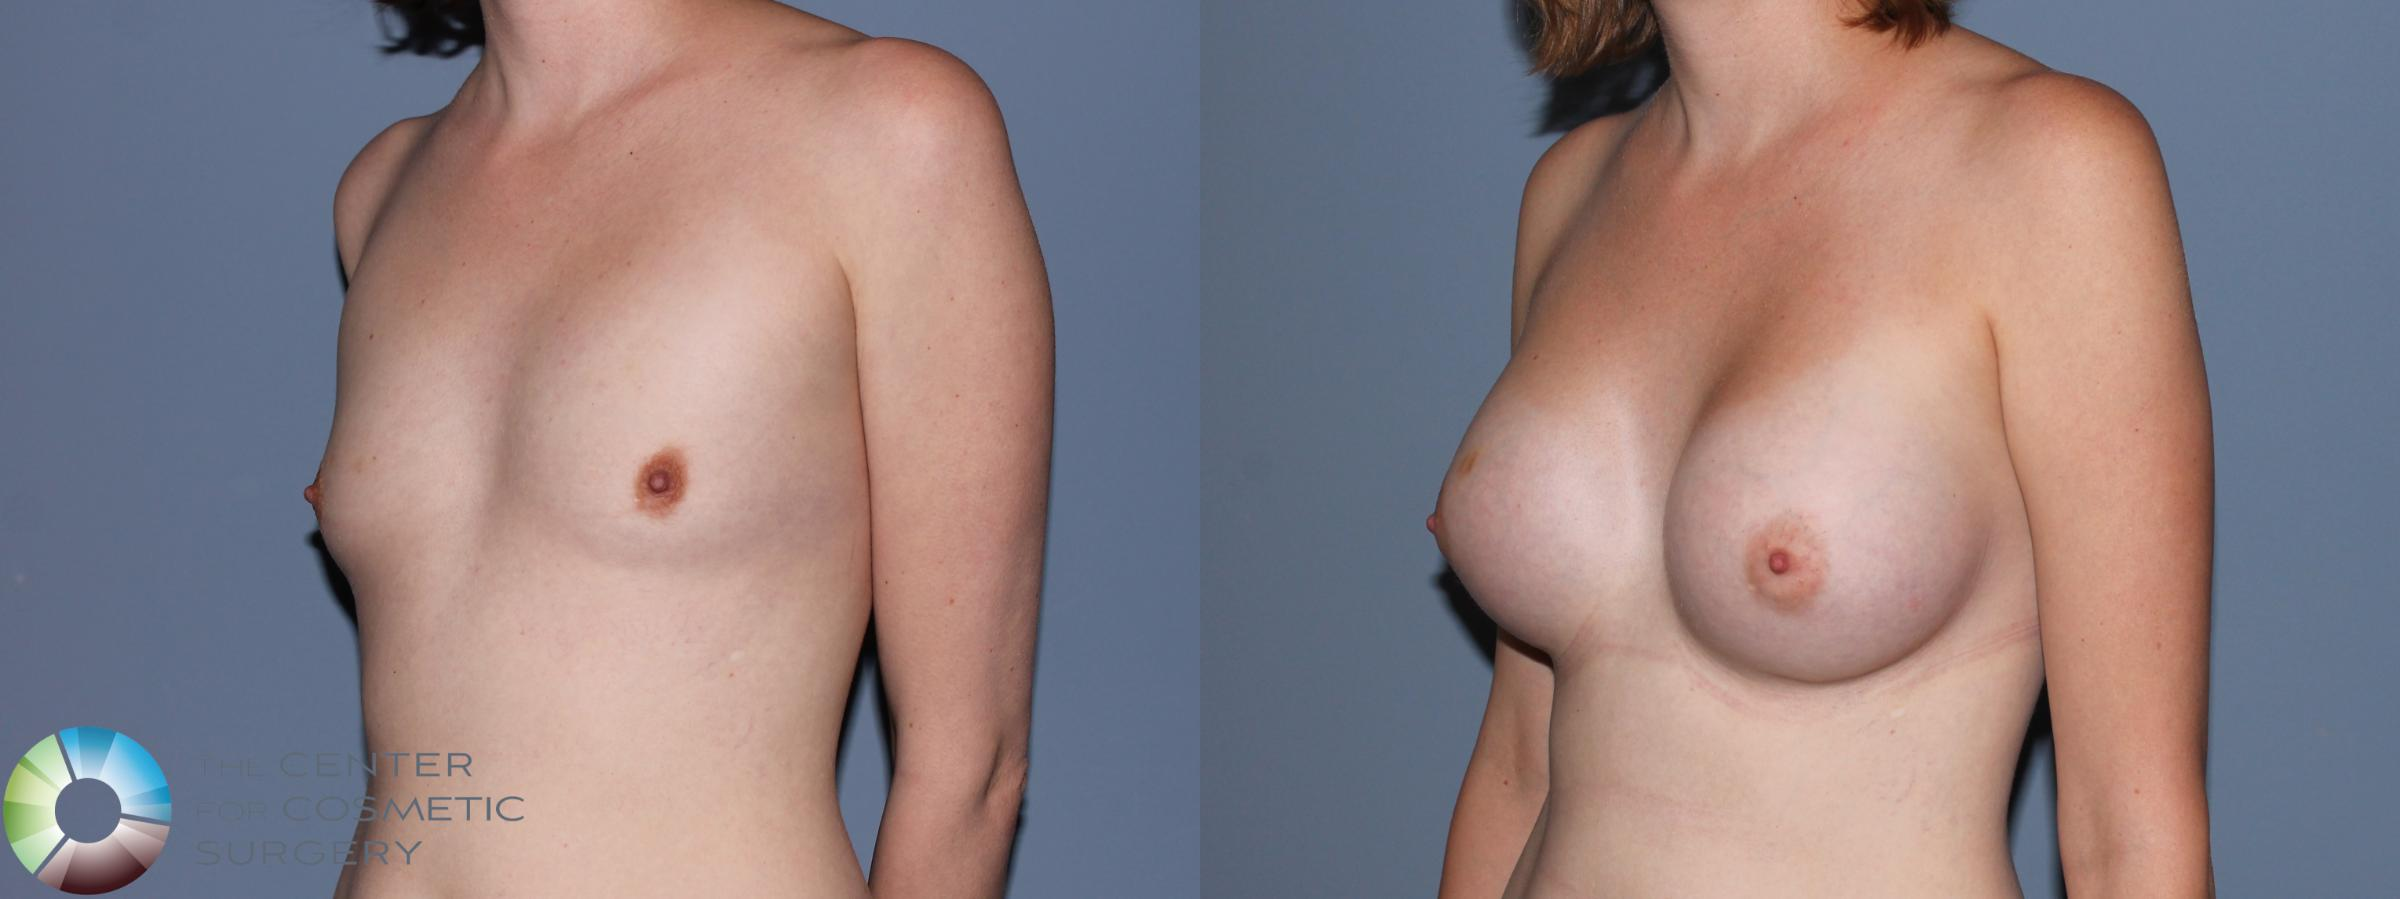 Breast Augmentation Case 707 Before & After View #2 | Golden, CO | The Center for Cosmetic Surgery